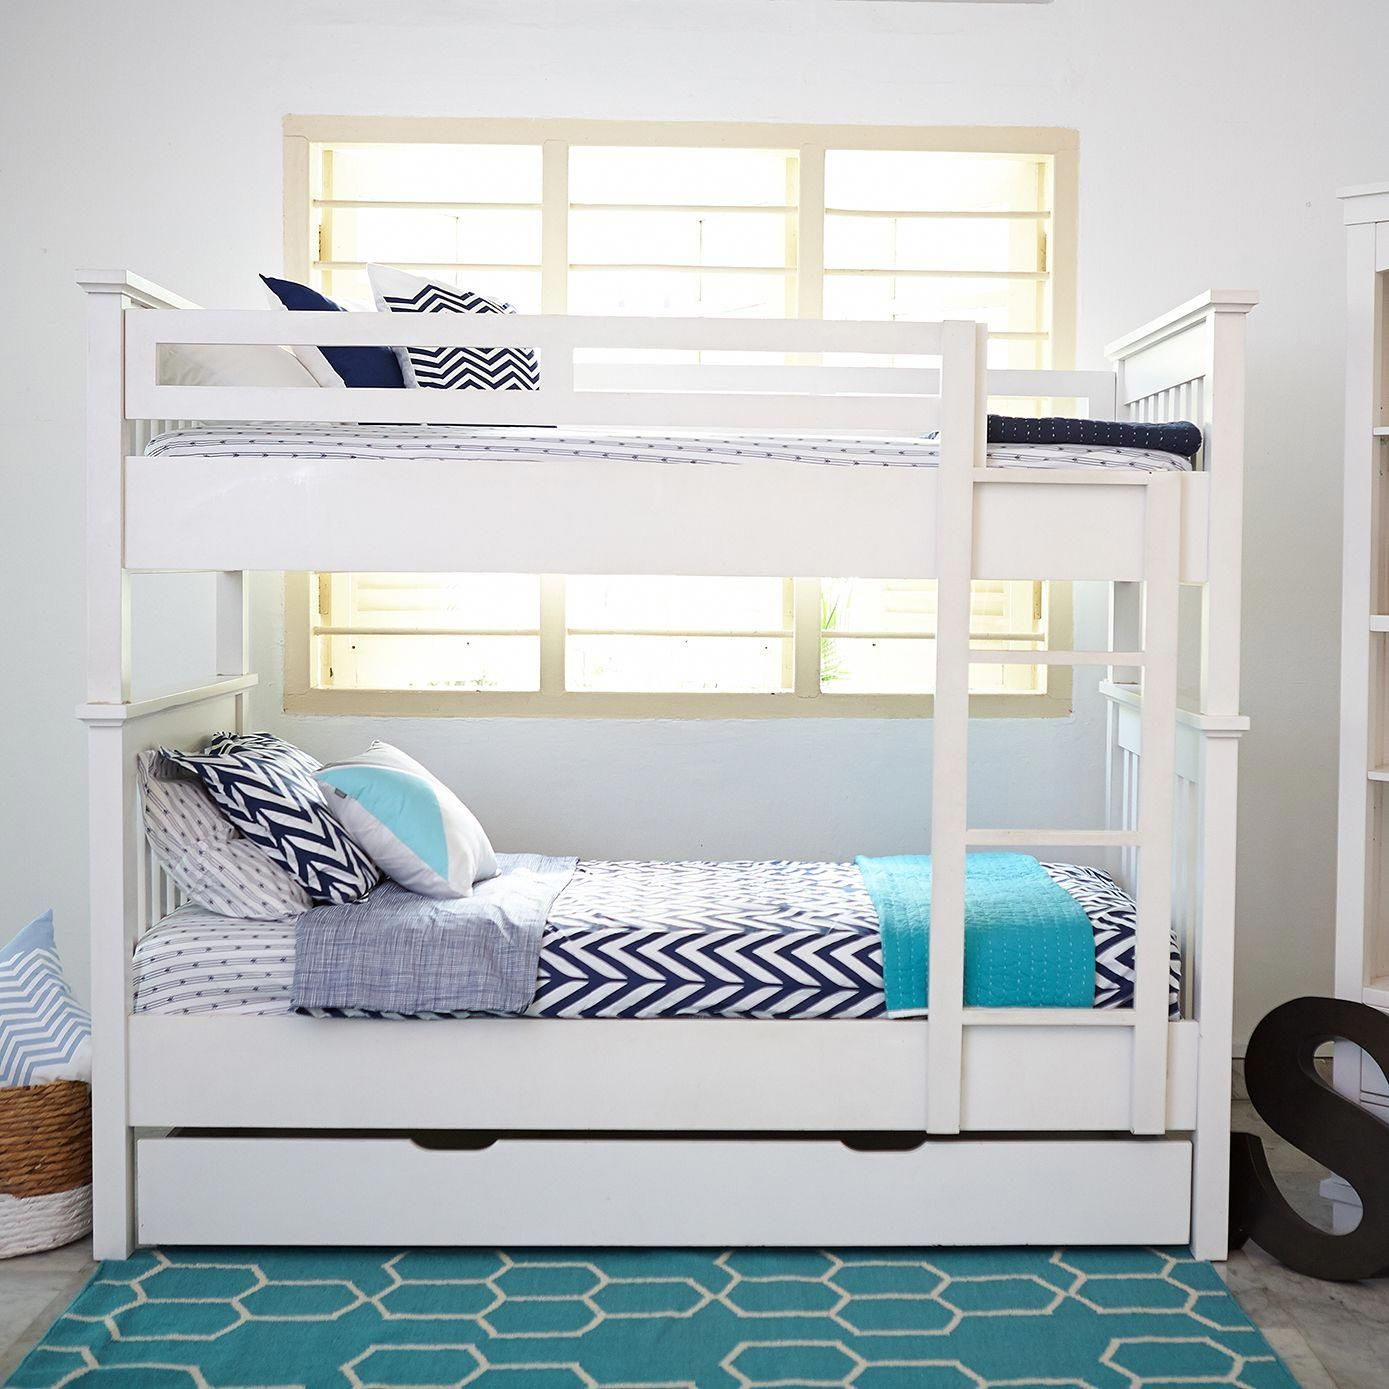 Bunk Beds Bed Frame Queen Size Bed Bedroom Furniture Kids Beds